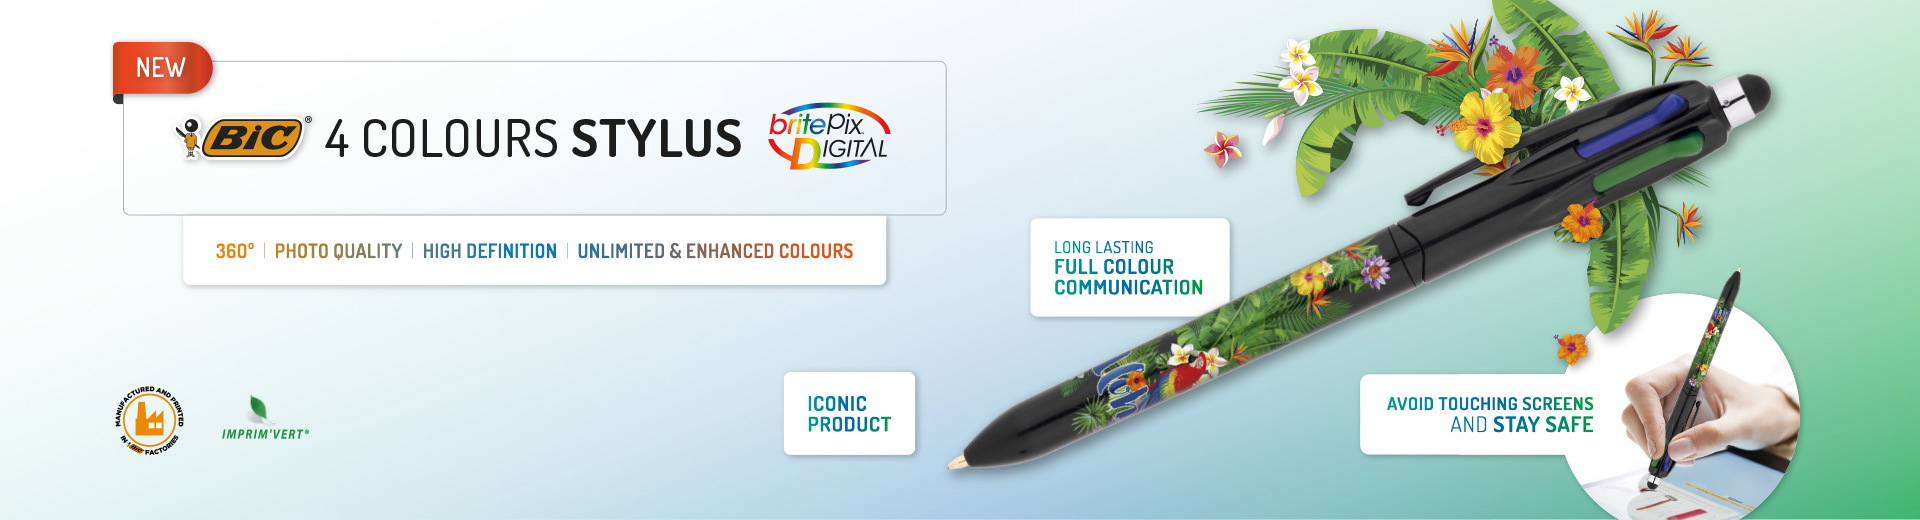 BIC® 4 Colours Stylus Digital